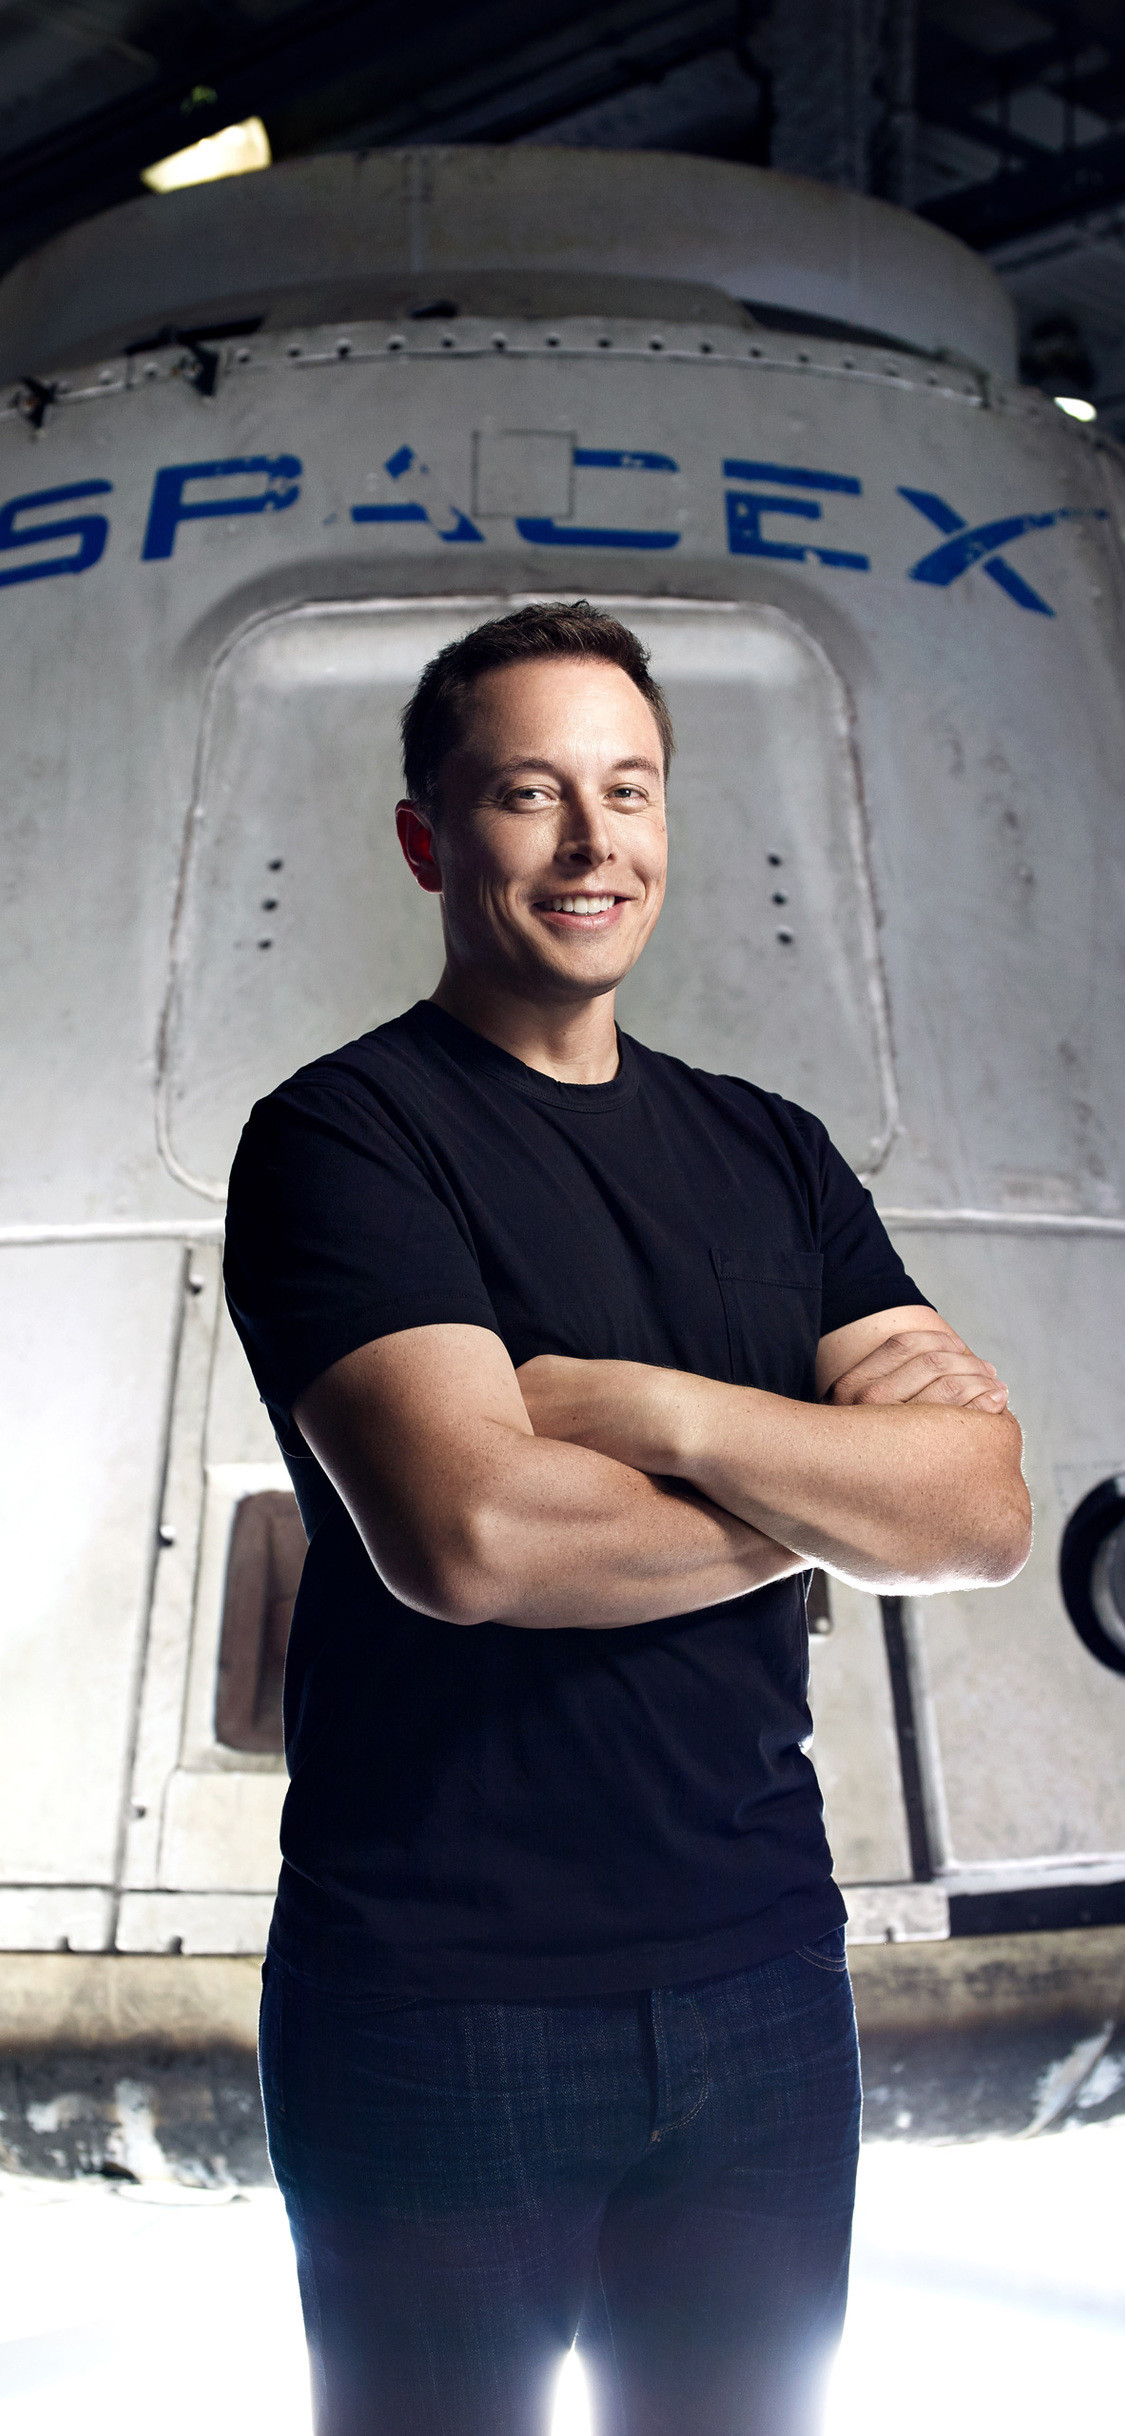 79 Elon Musk Wallpapers on WallpaperPlay 1125x2436